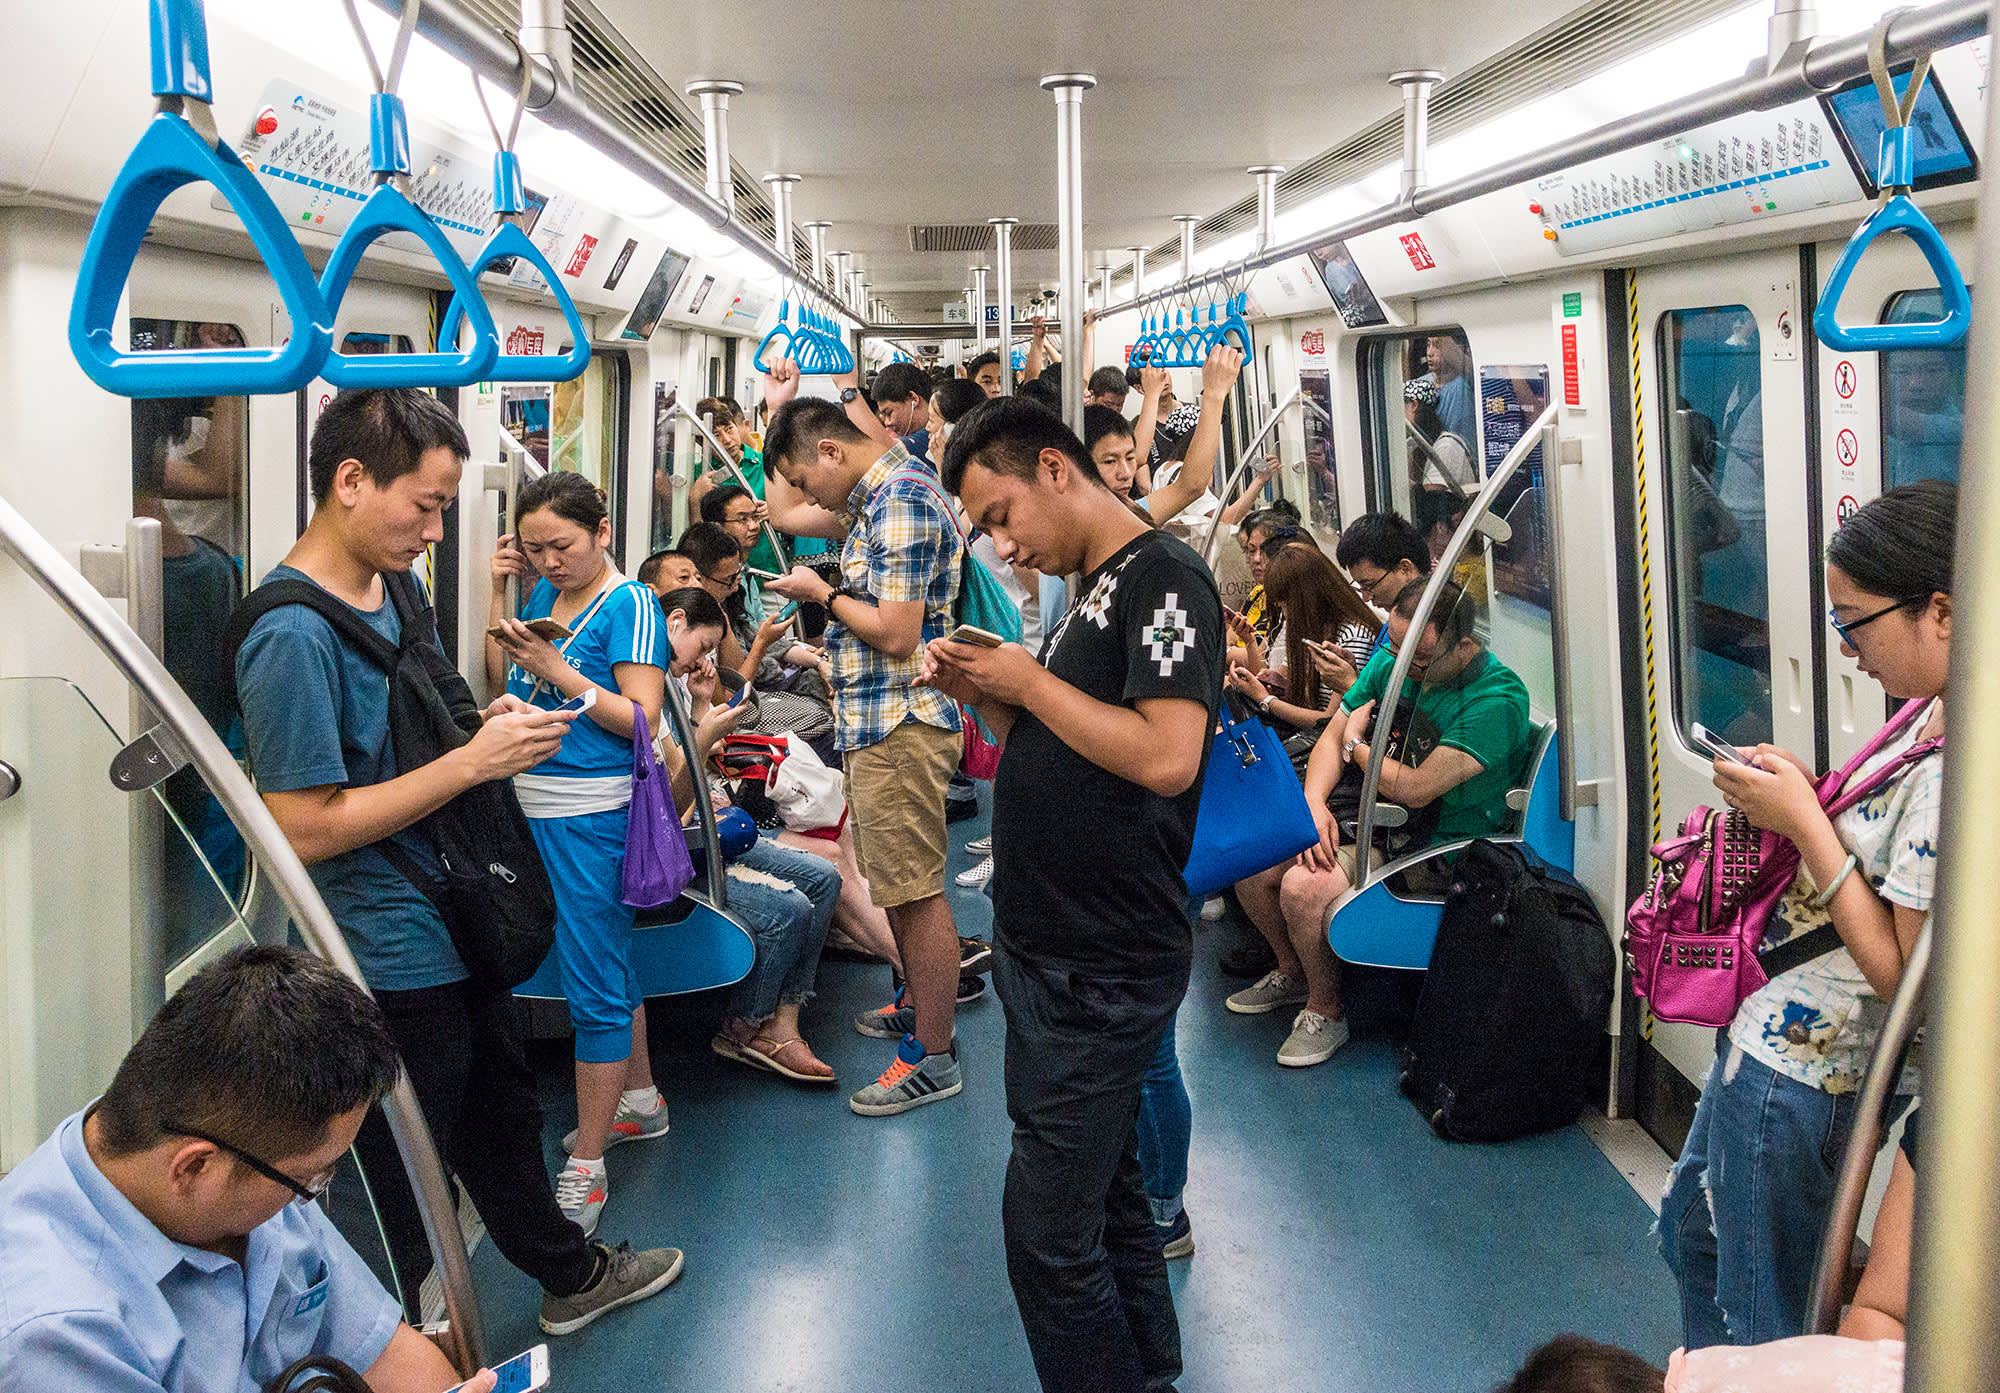 Passengers look at smartphones on a subway train on April 6, 2017 in Chengdu, China.